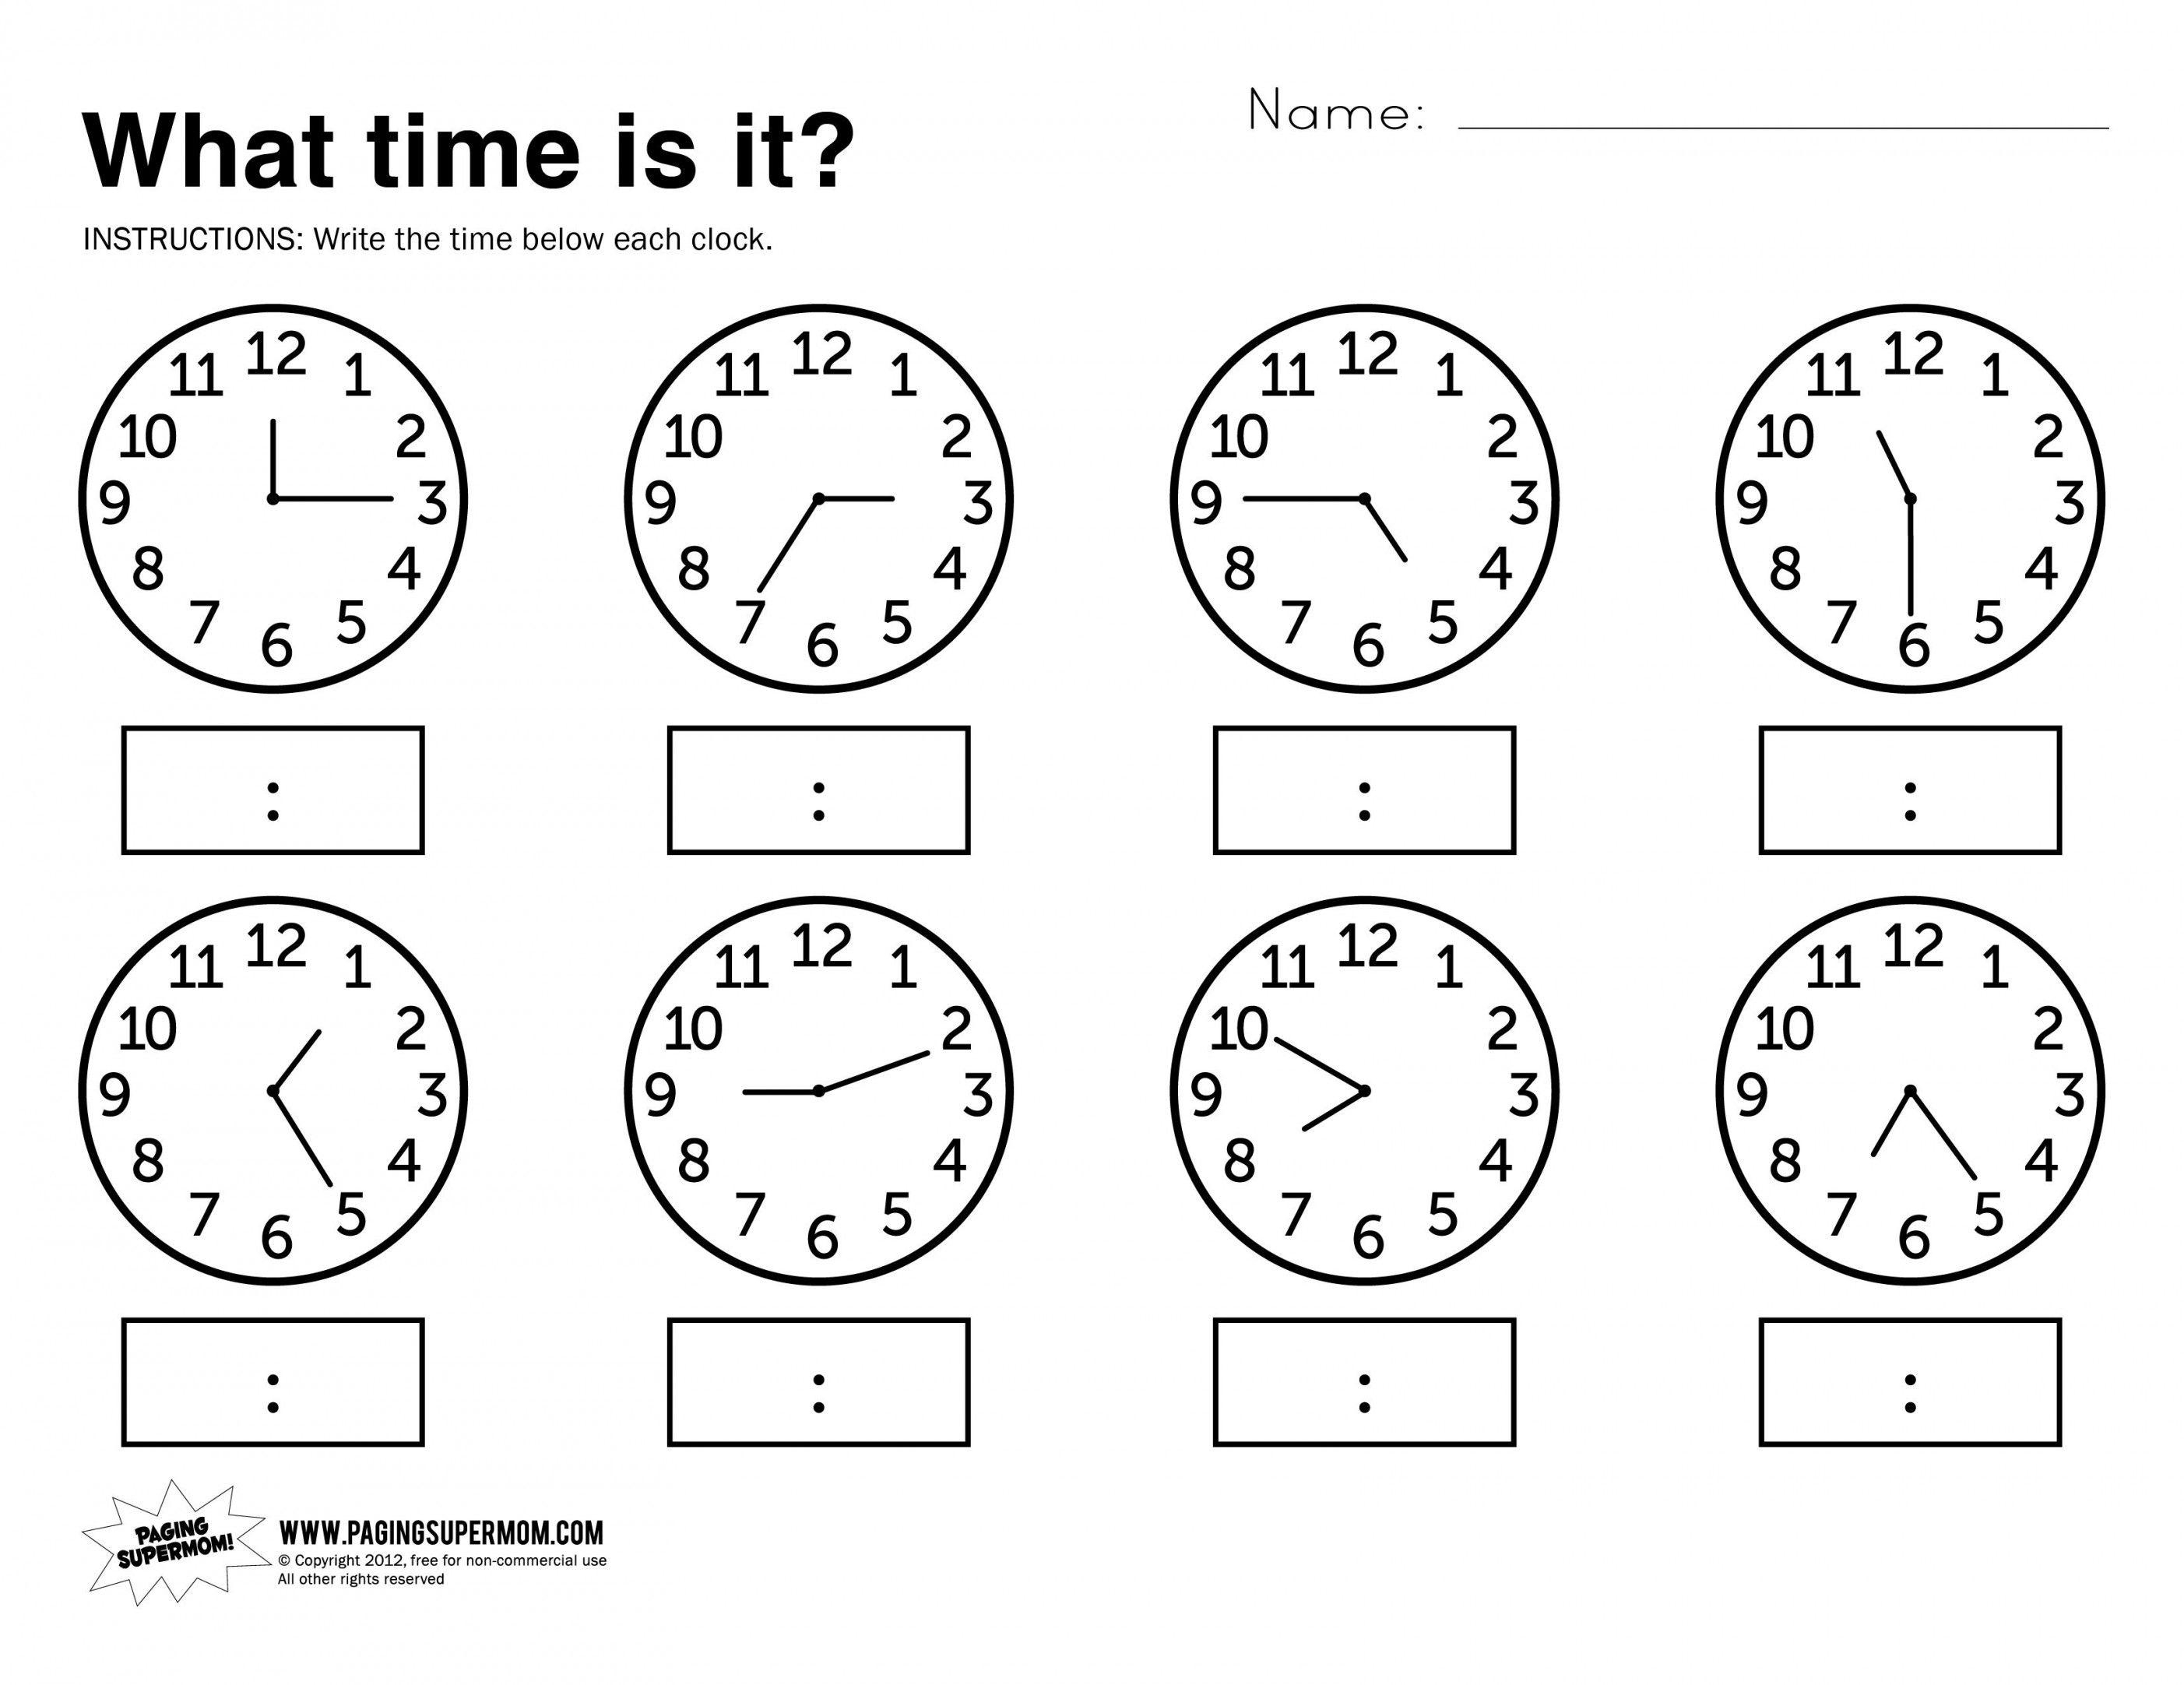 Telling Time Worksheets Grade 3 | Lostranquillos - Free Printable | Telling Time Worksheets Printable